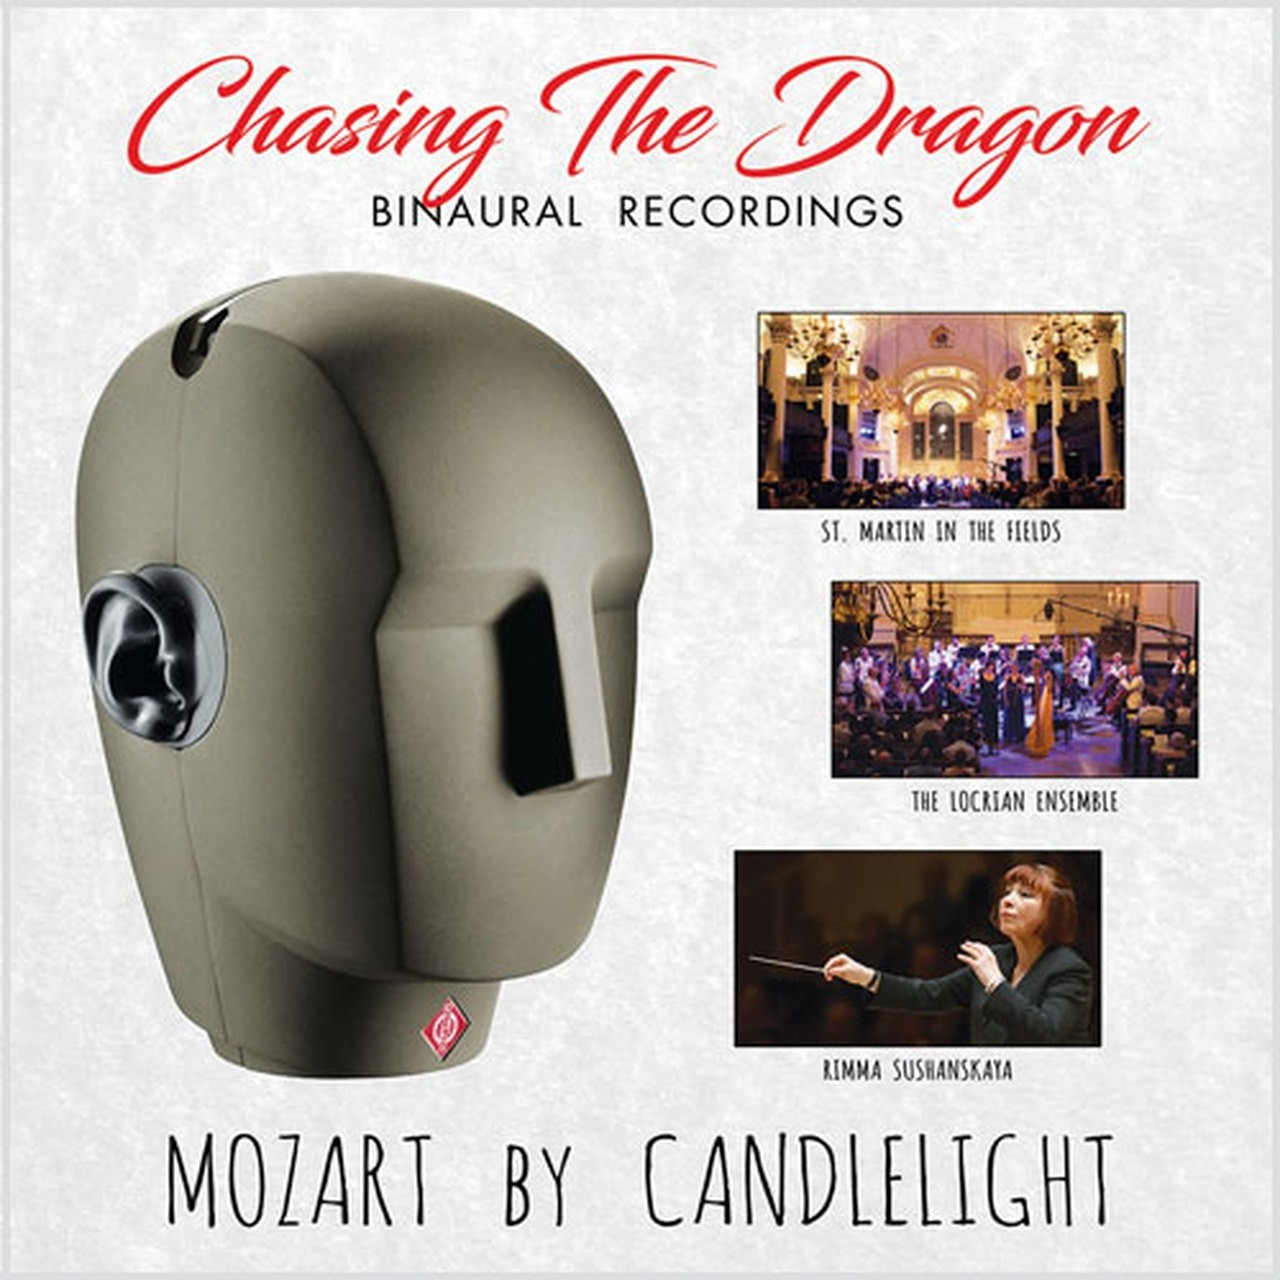 Mozart By Candlelight - Binaural Recordings